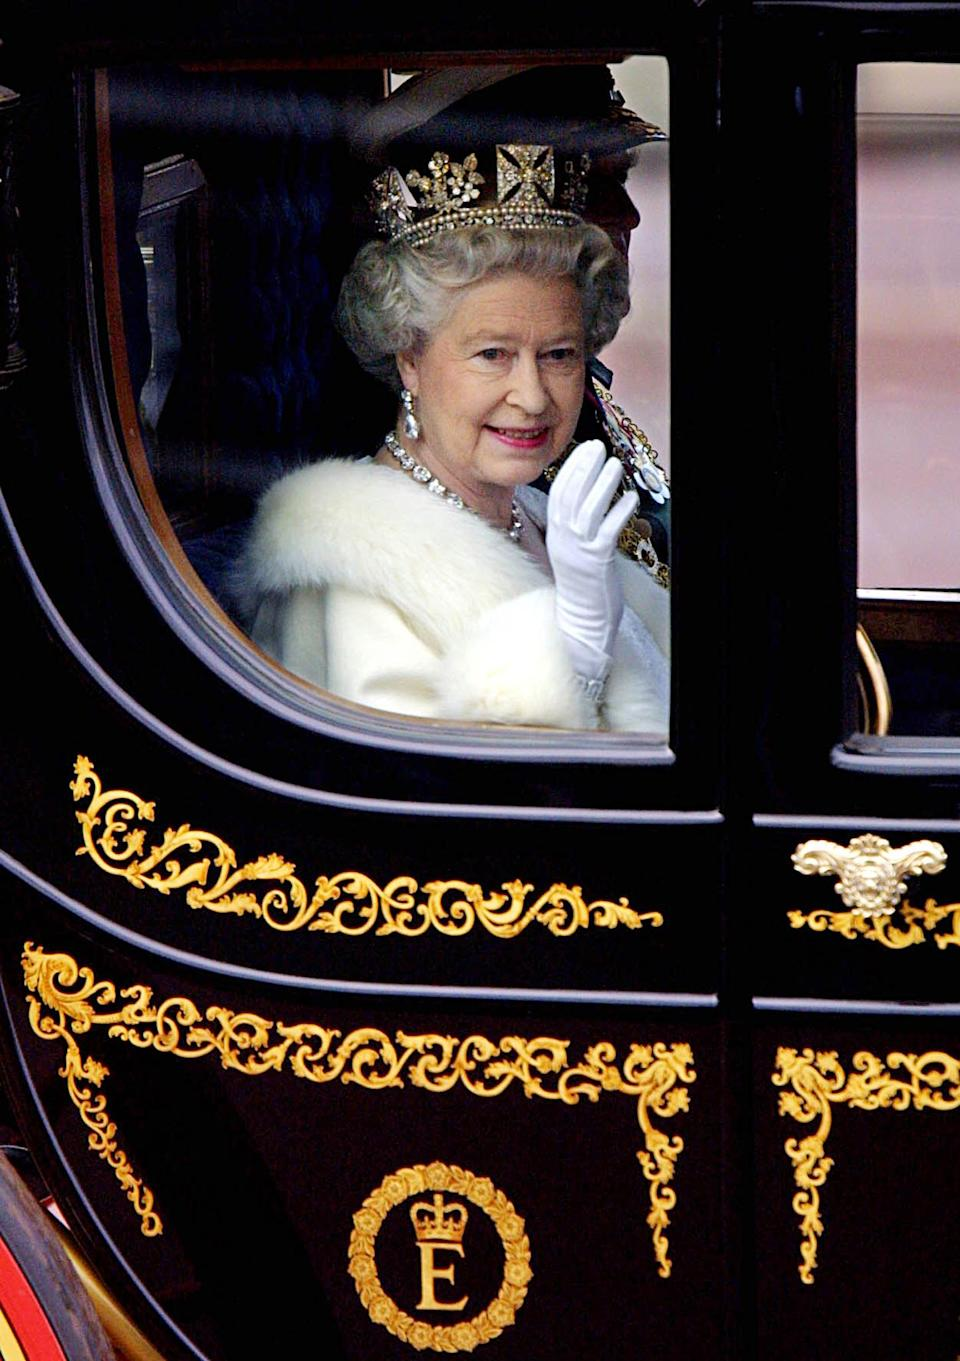 The Queen is rarely spotted waving to the public without her trusty white glove and there's no doubt the contraption would come in handy when she's expected to wave for extended periods of time. [Photo: Getty Images]